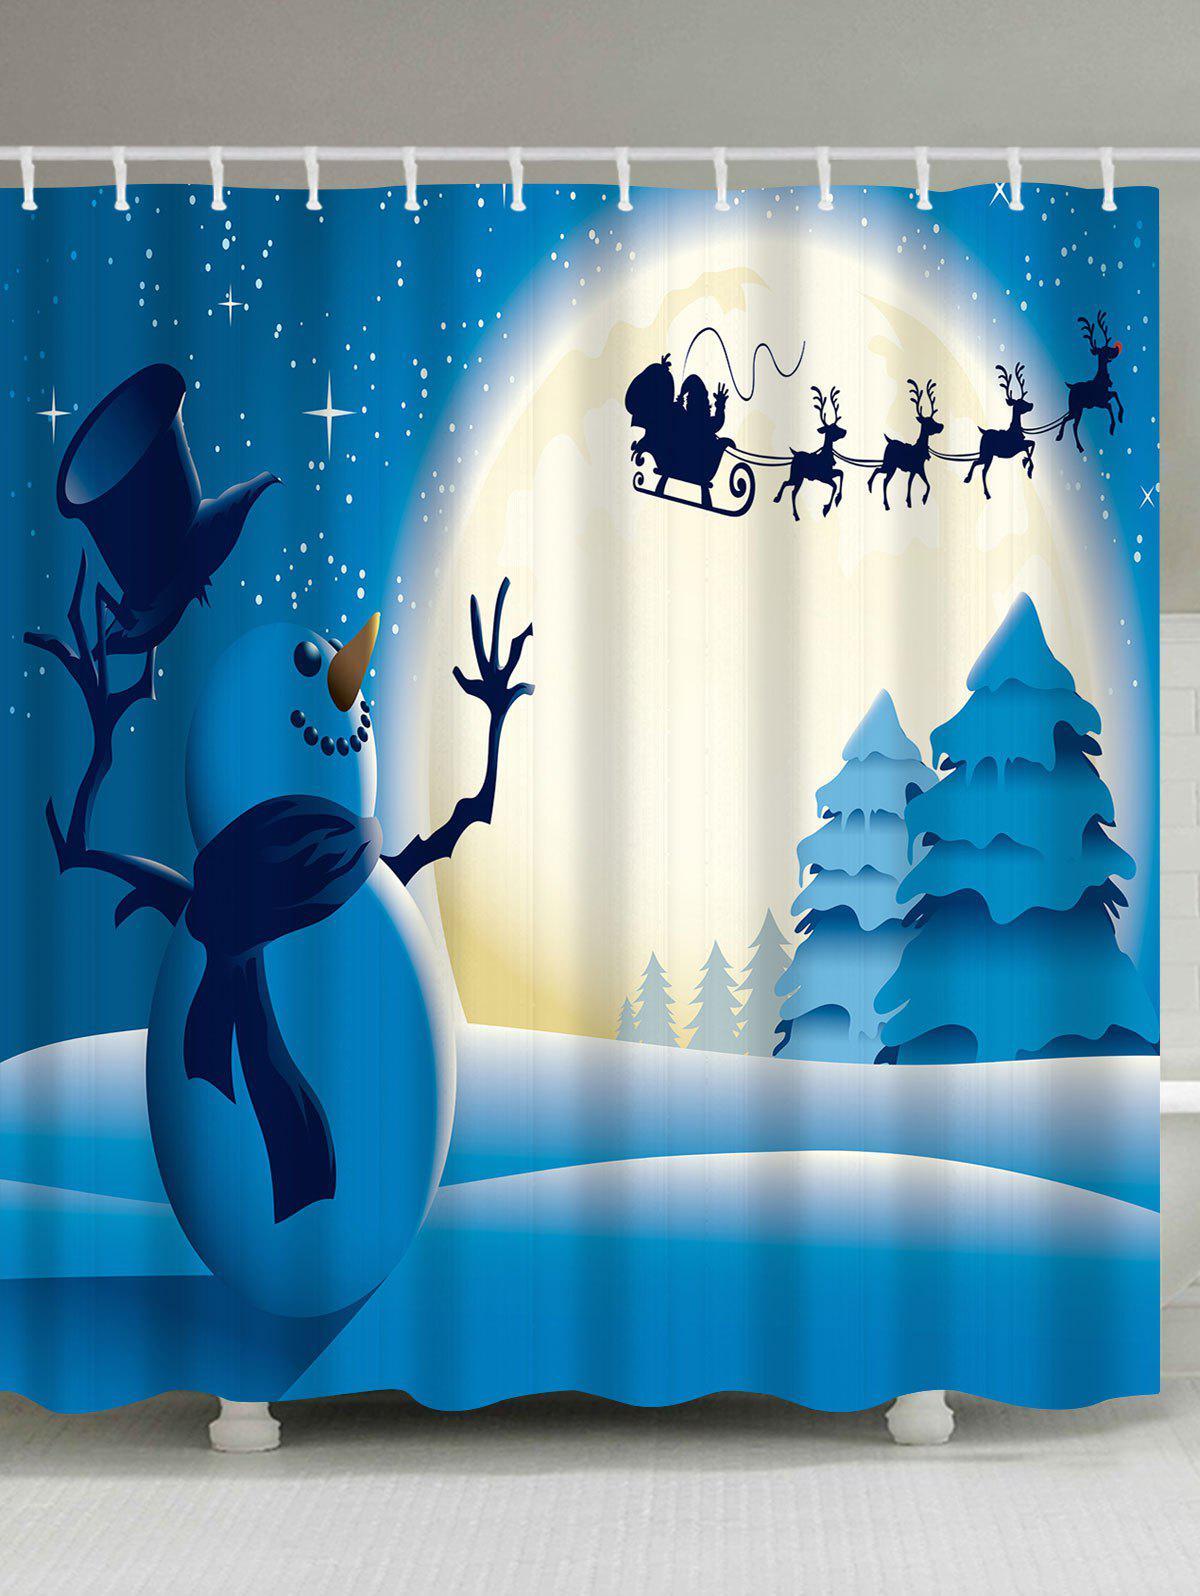 Christmas Snowman Moon Waterproof Shower Curtain цена и фото